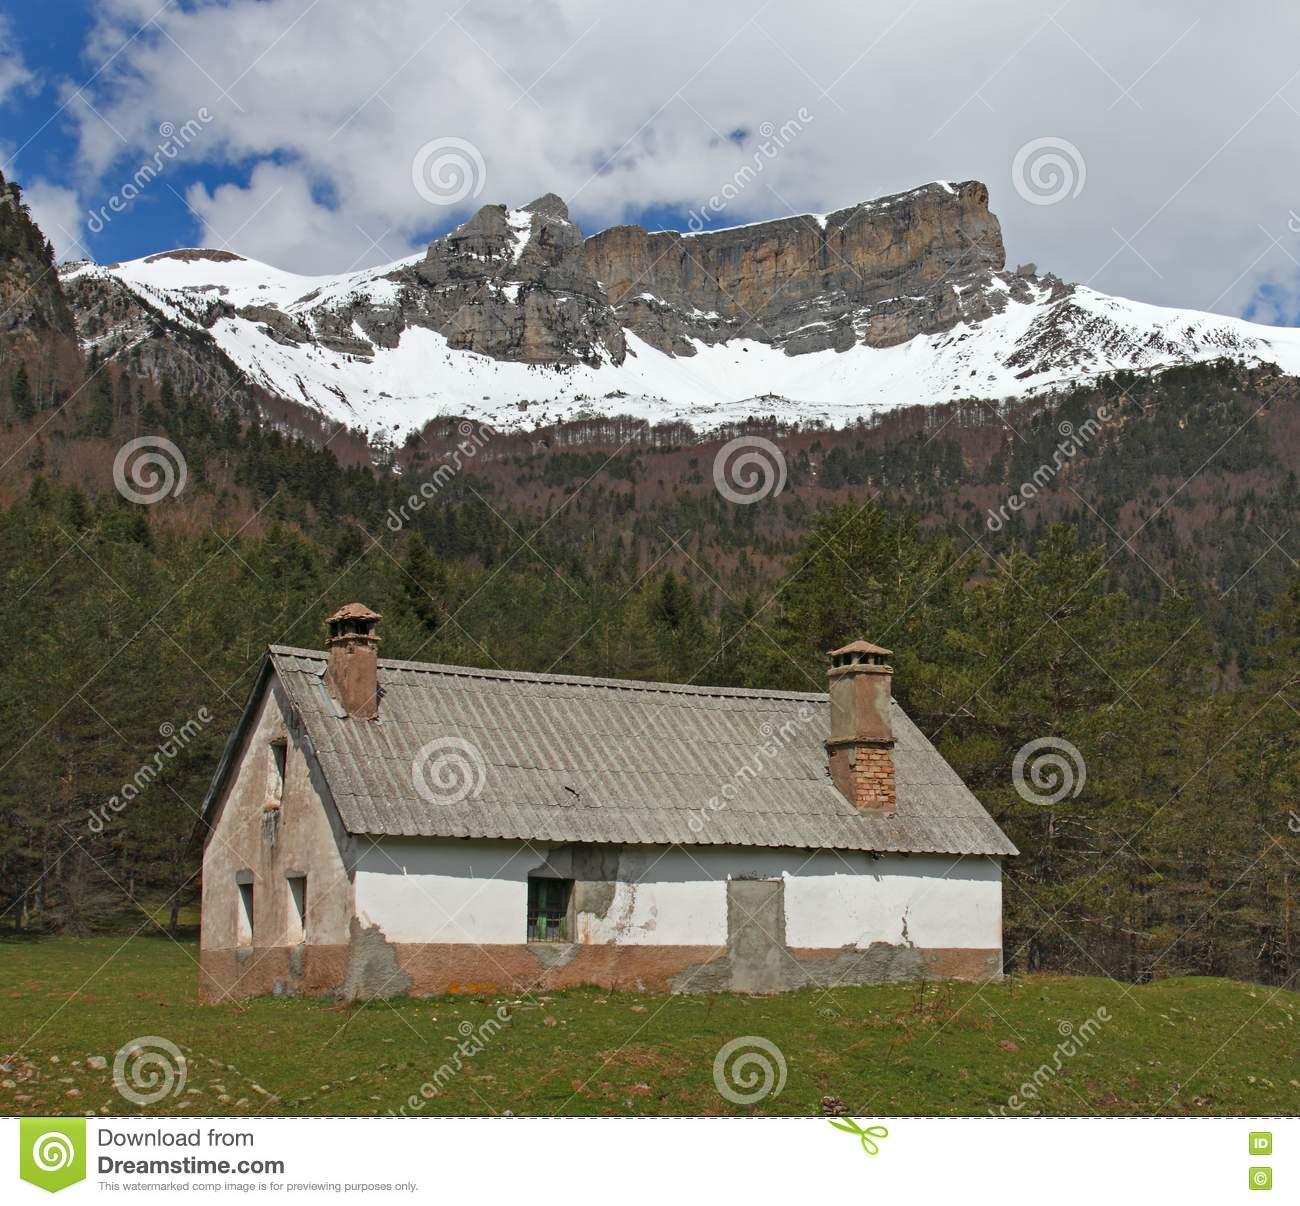 Snowy Peaks Christmas Tree Farm: Hut And Snow-covered Mountains In Pyrenees Stock Photo